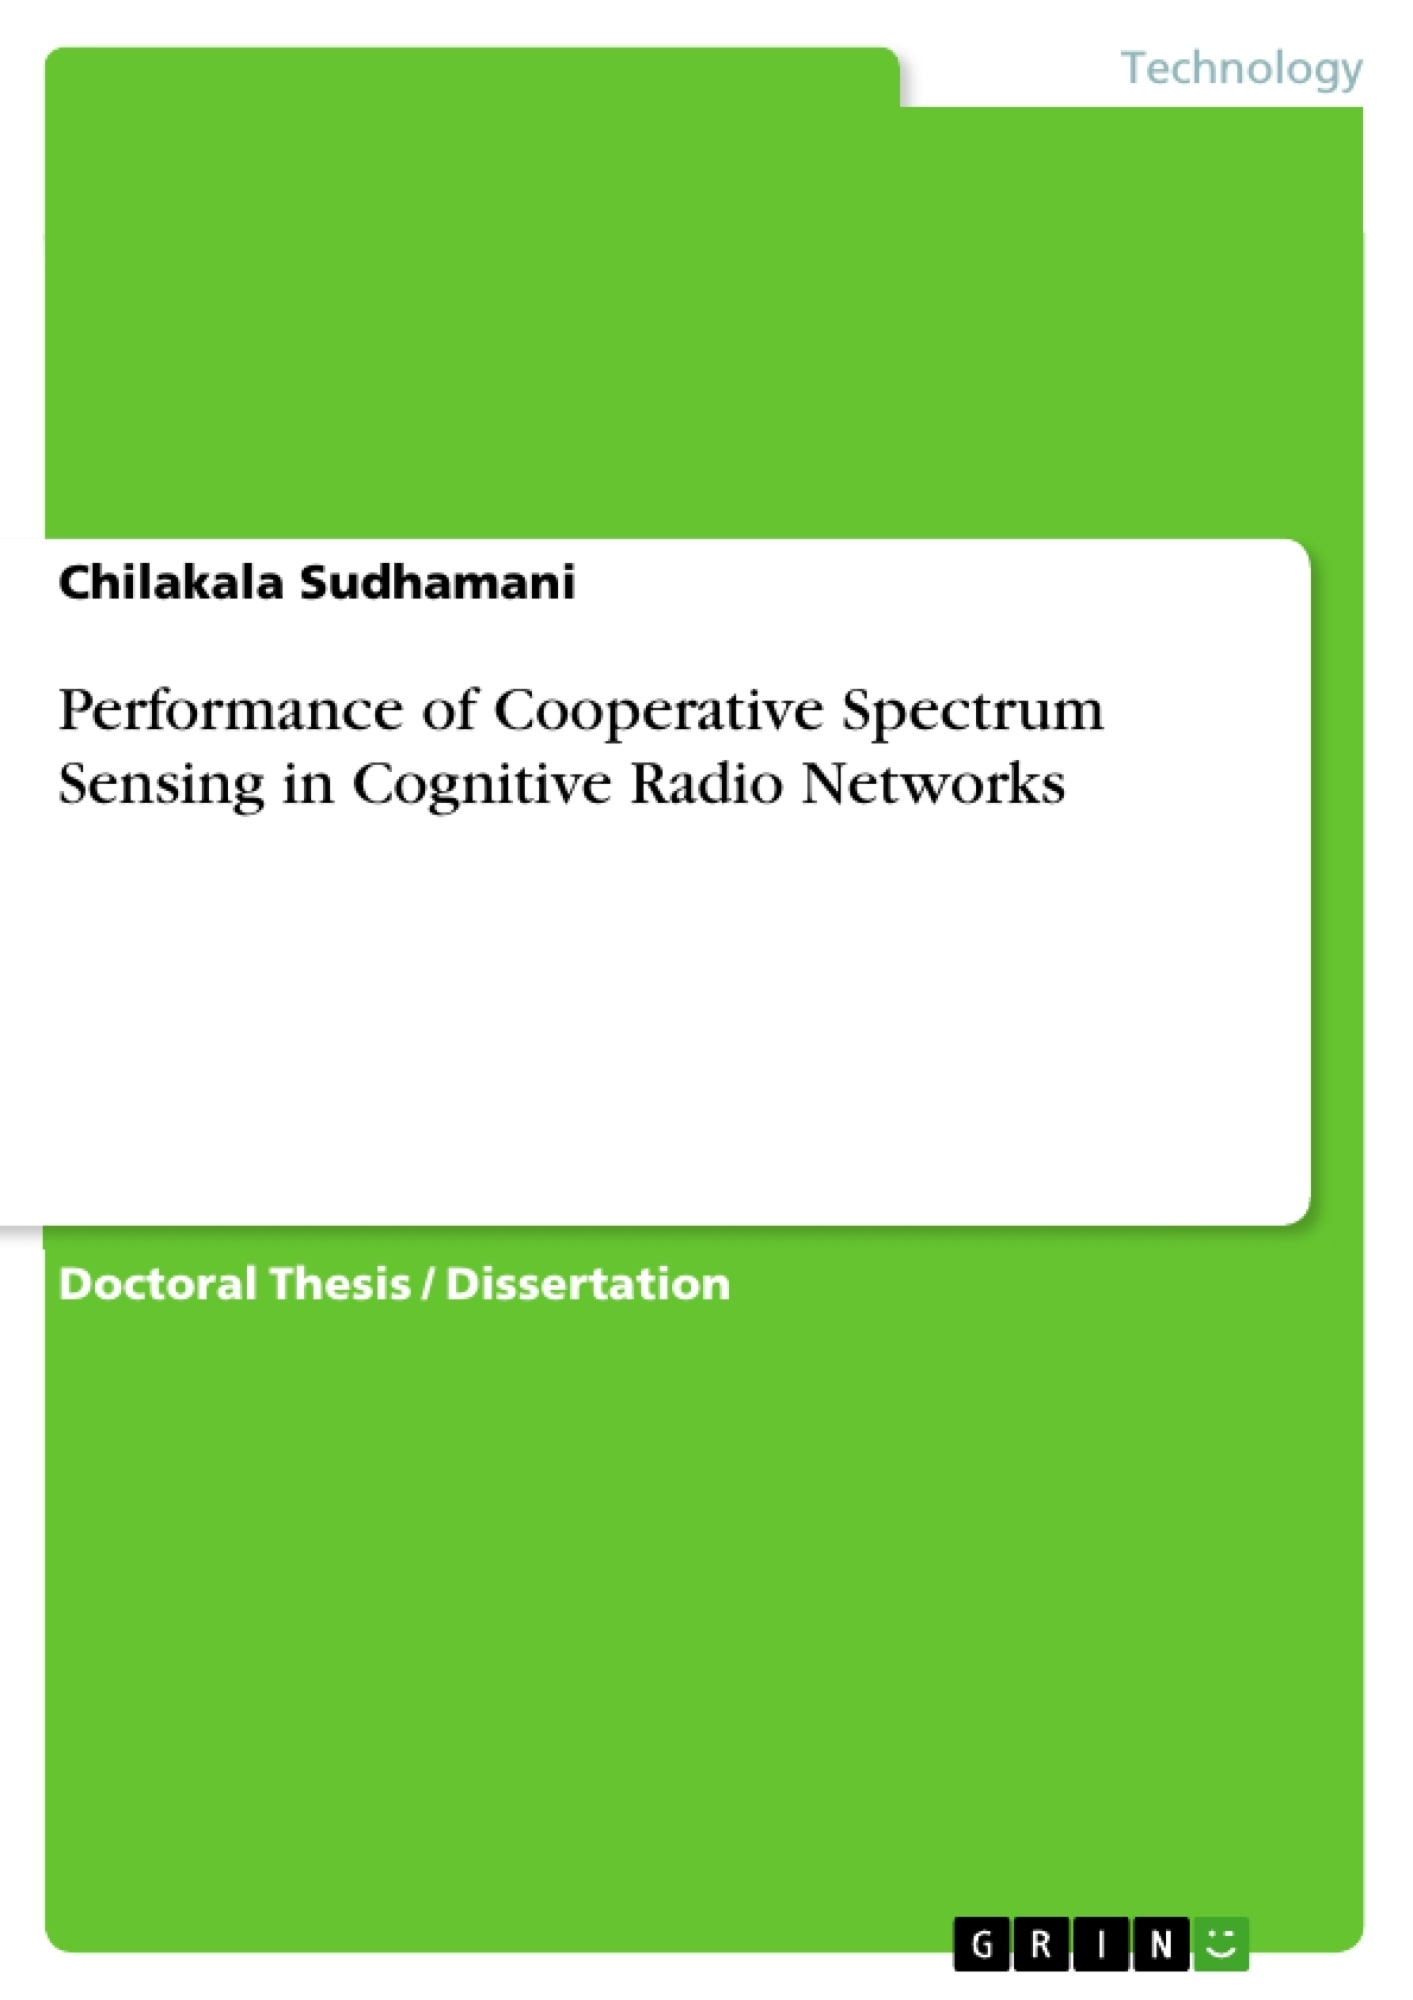 Title: Performance of Cooperative Spectrum Sensing  in Cognitive Radio Networks